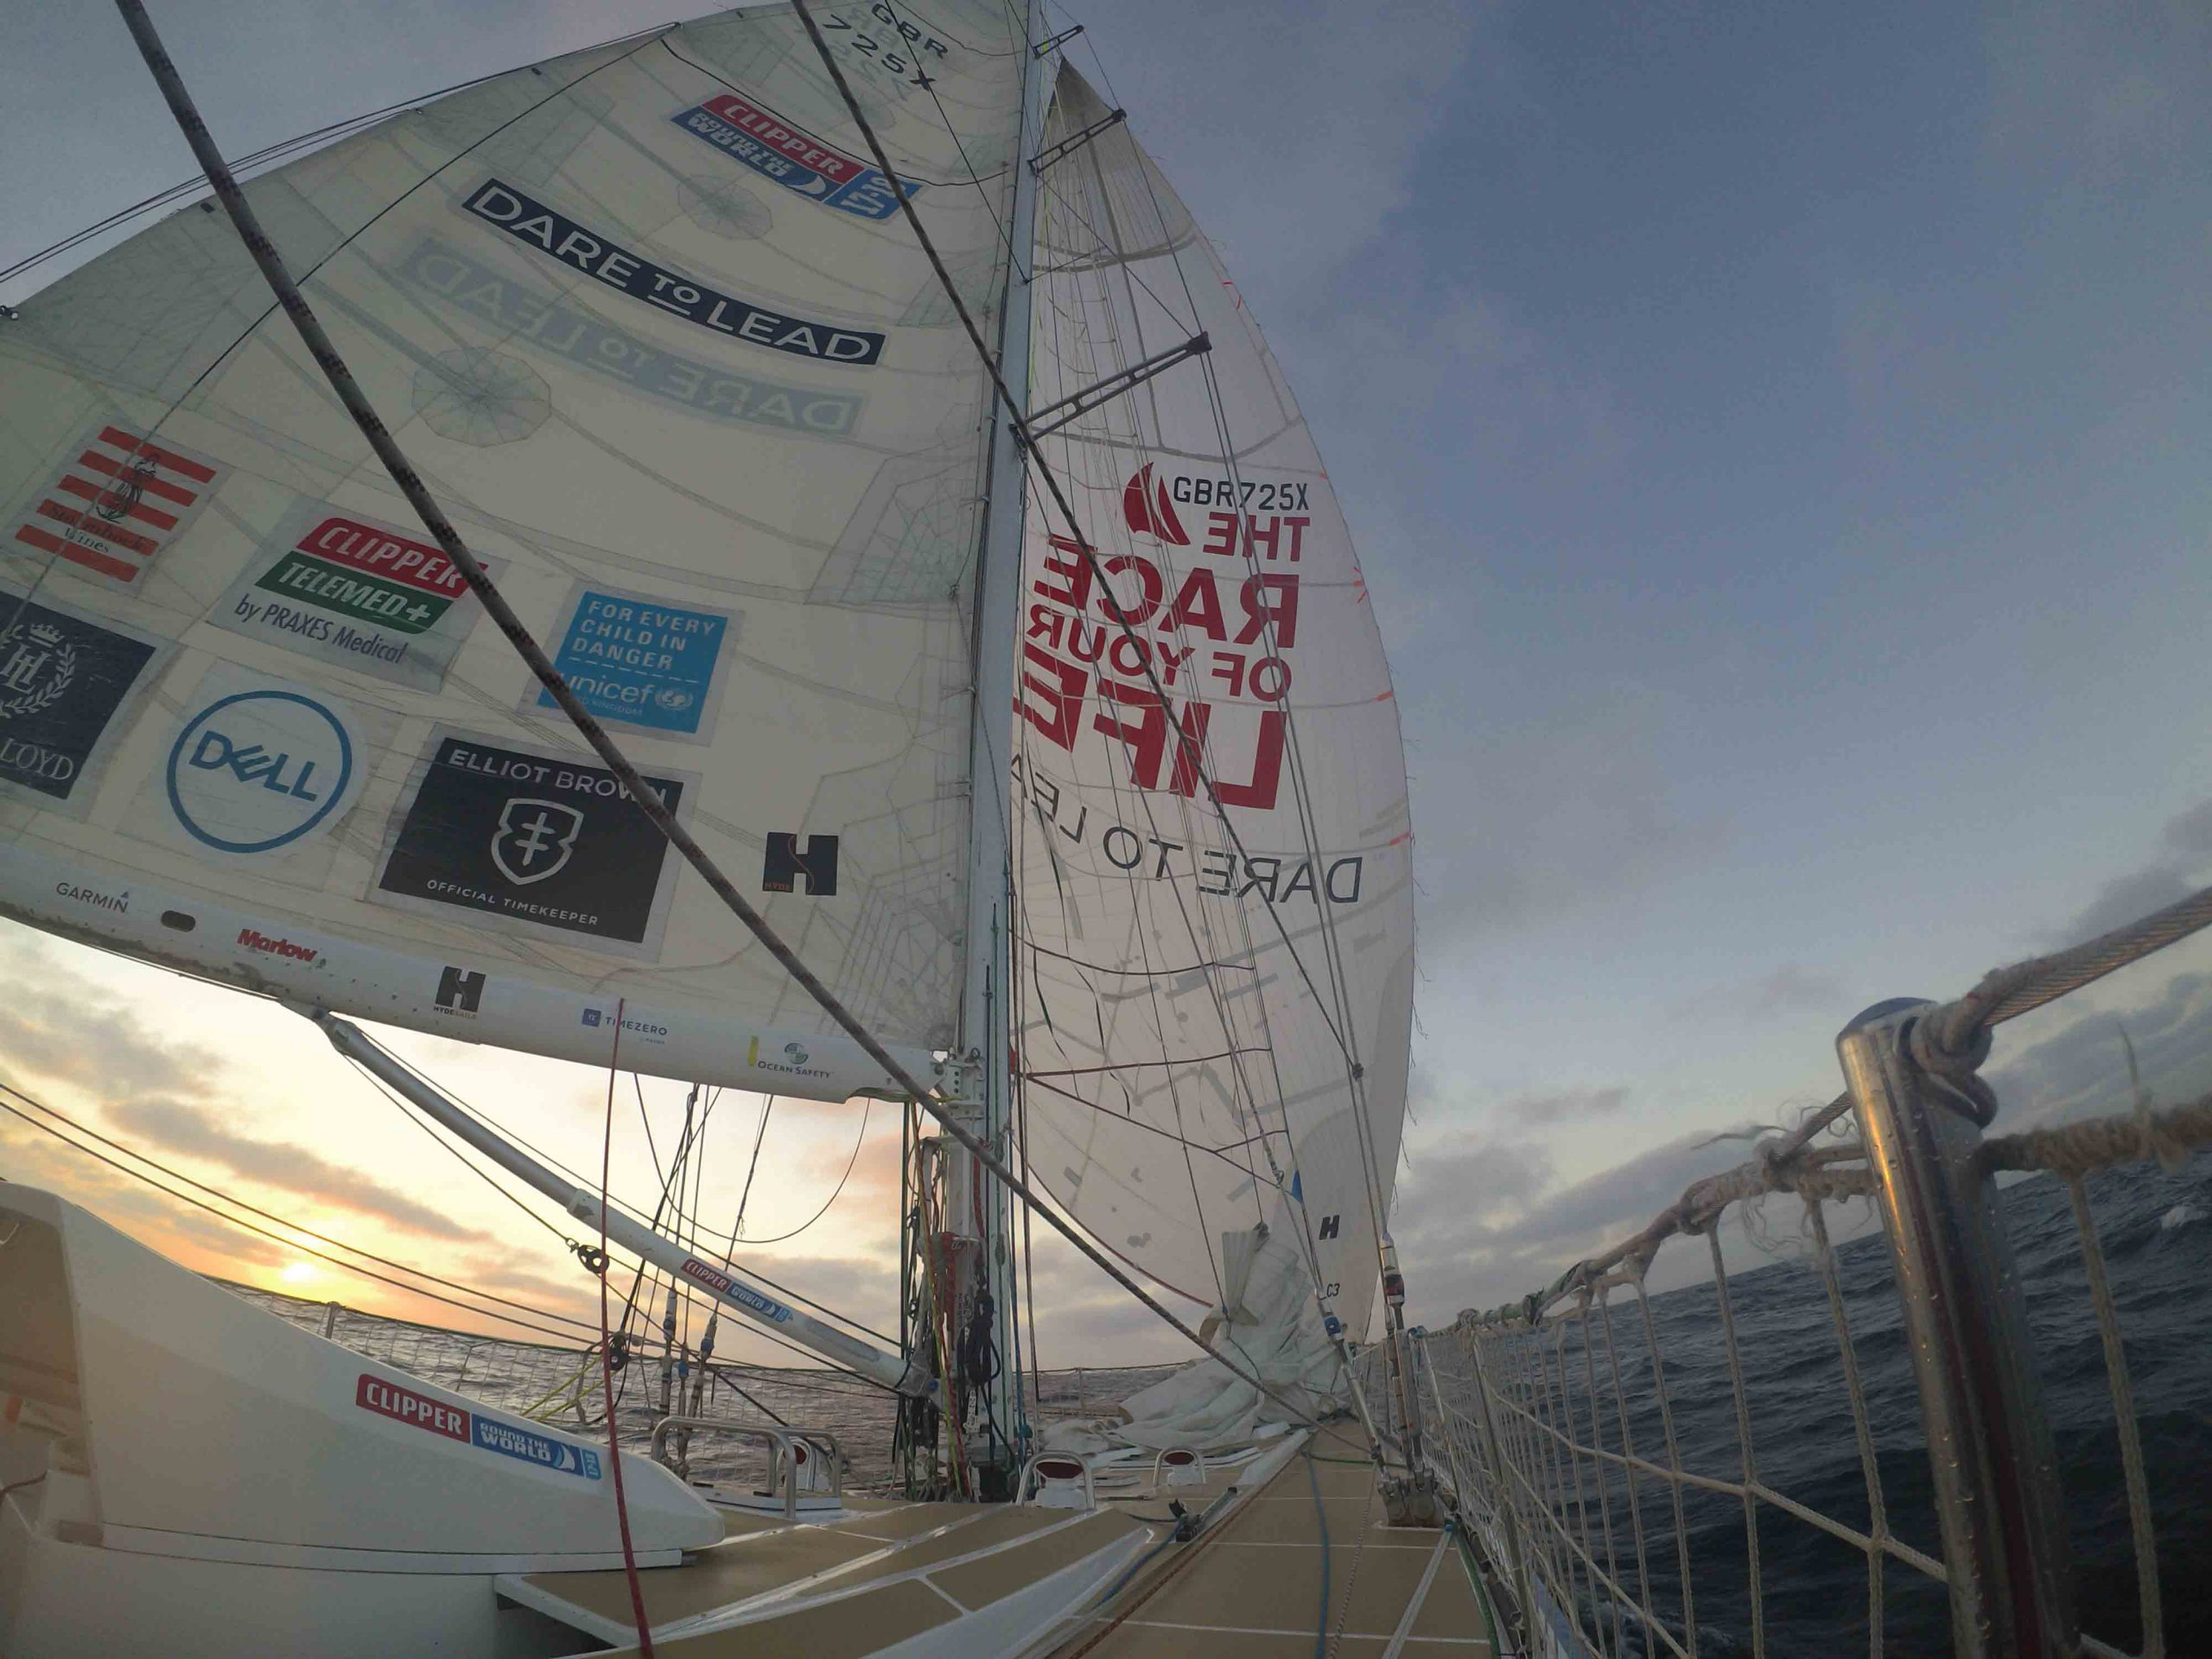 Dare to Lead flying Code 2 kite at sunrise - Clipper Race pic